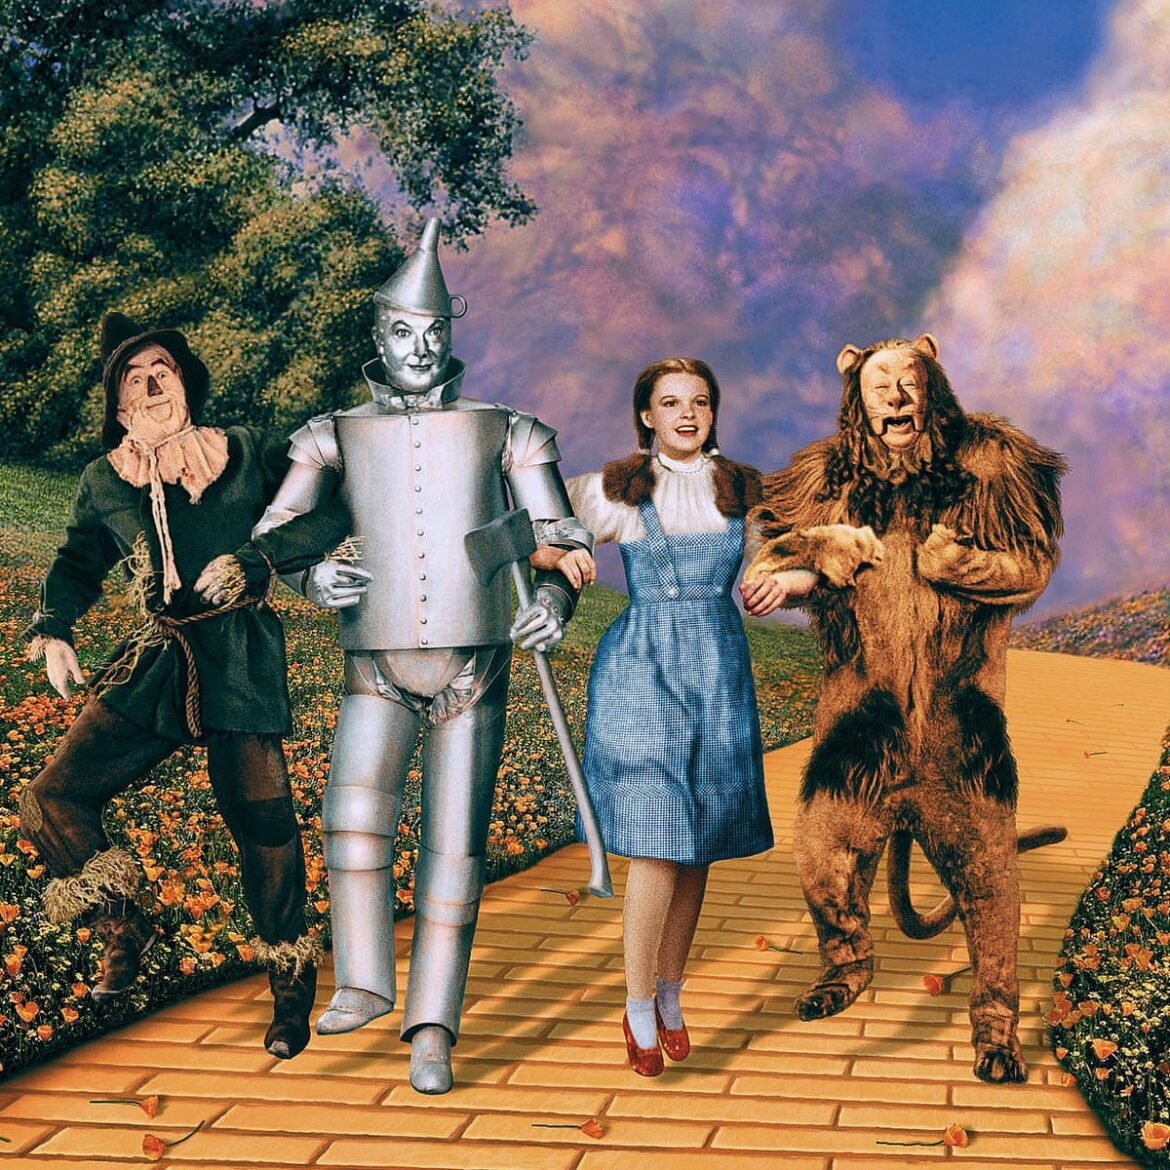 Wizard of Oz Remake in Process